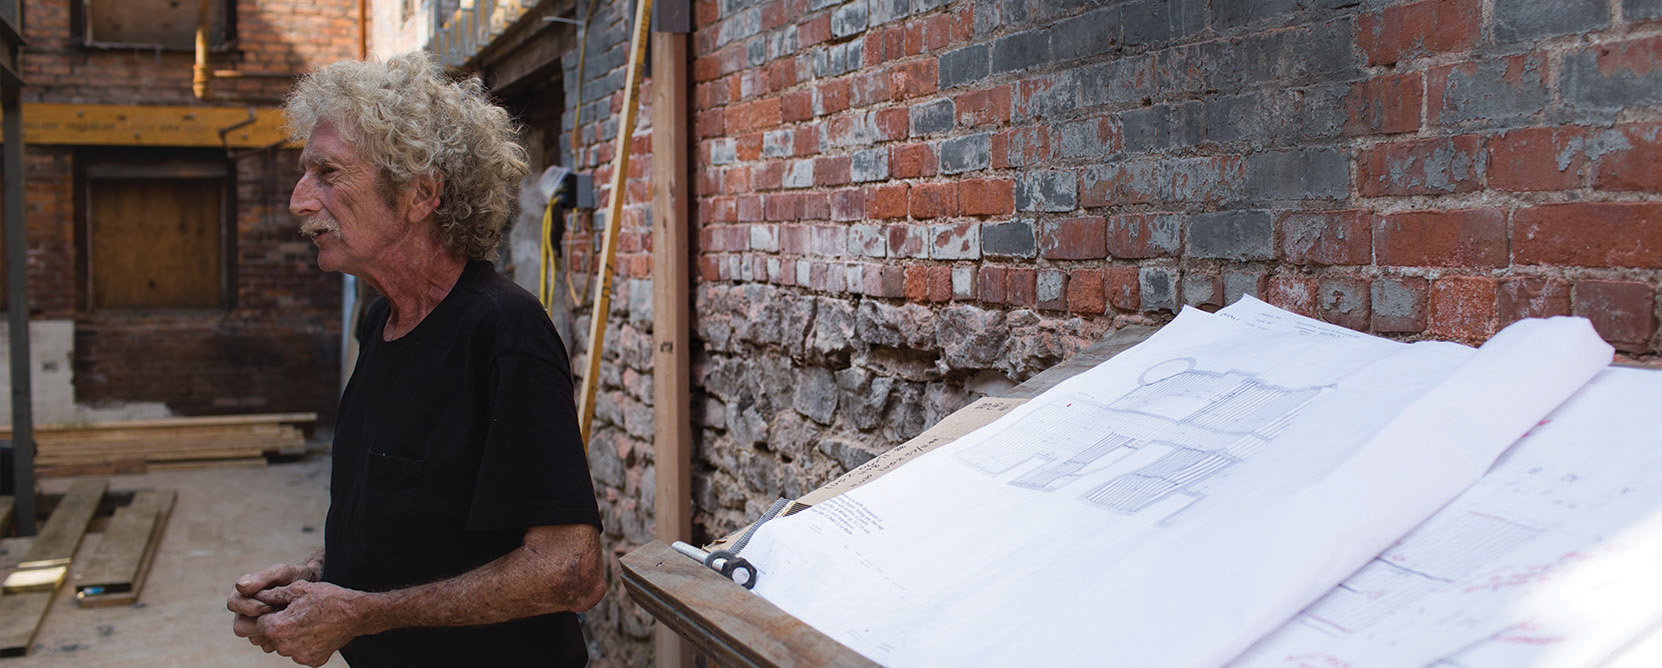 Joel Landy poses near architectural plans.